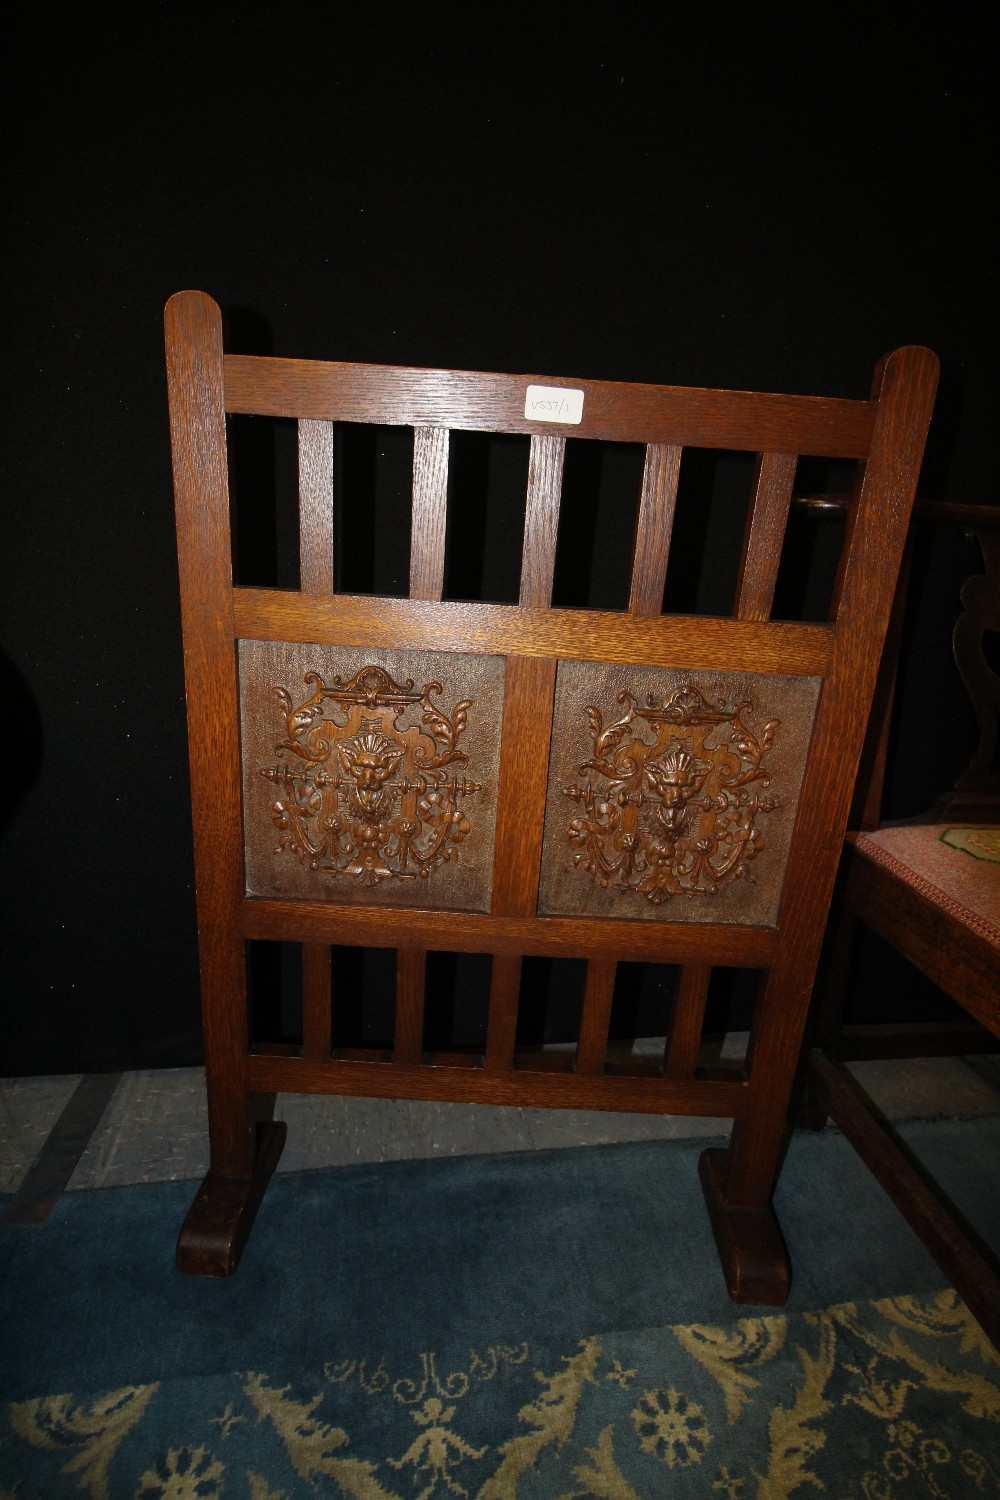 Lot 741 - Carved double iron Arts & Crafts fire screen